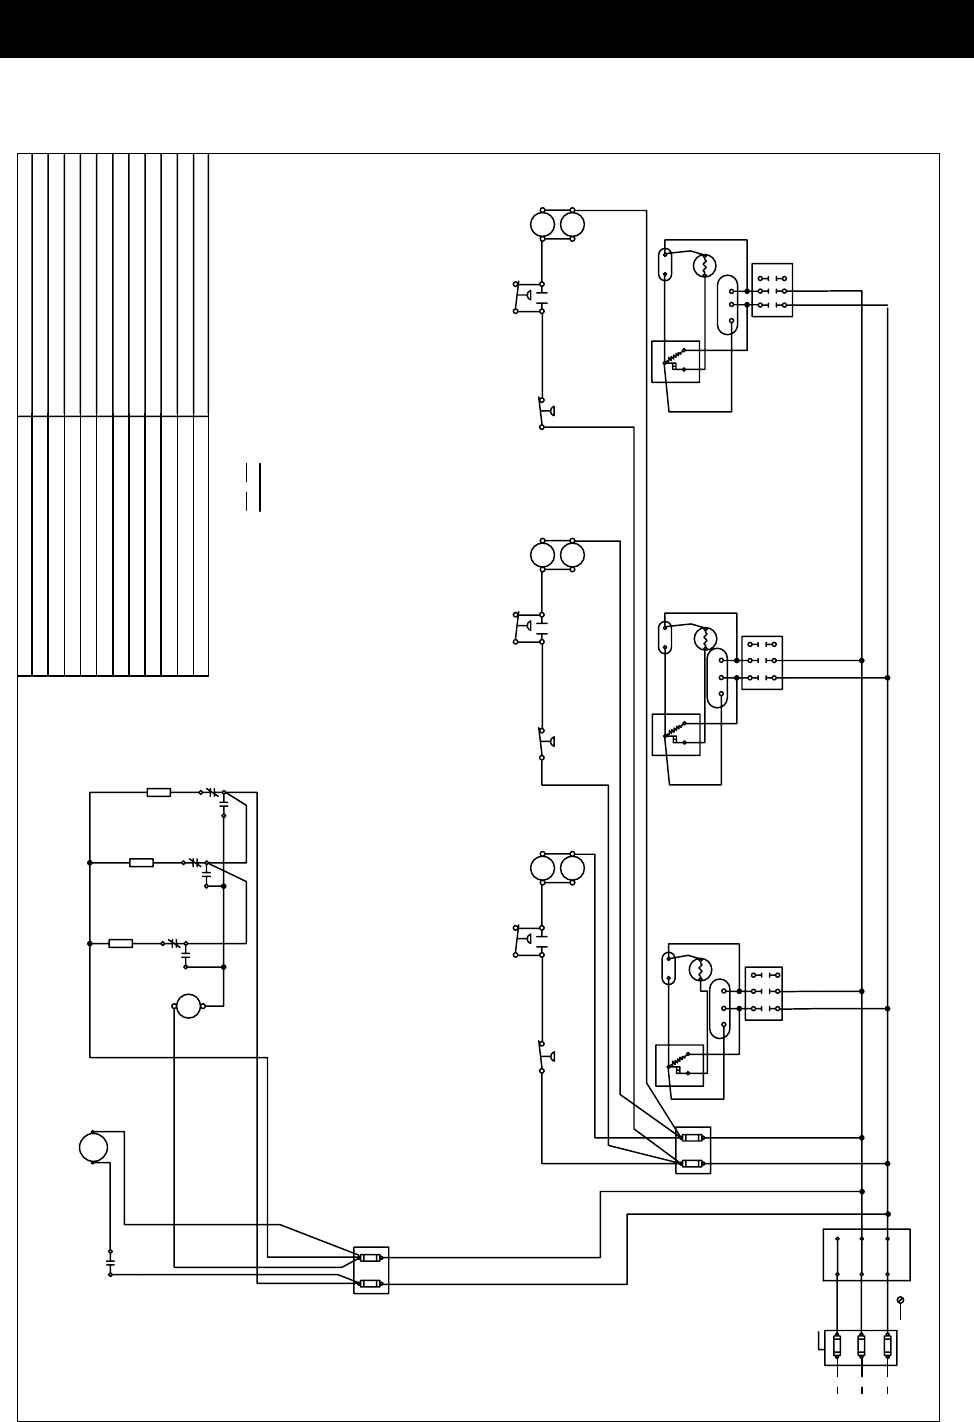 Heatcraft Refrigeration Products Flexpack 25006801 Users Manual 3ph Condenser Wiring Diagram 19